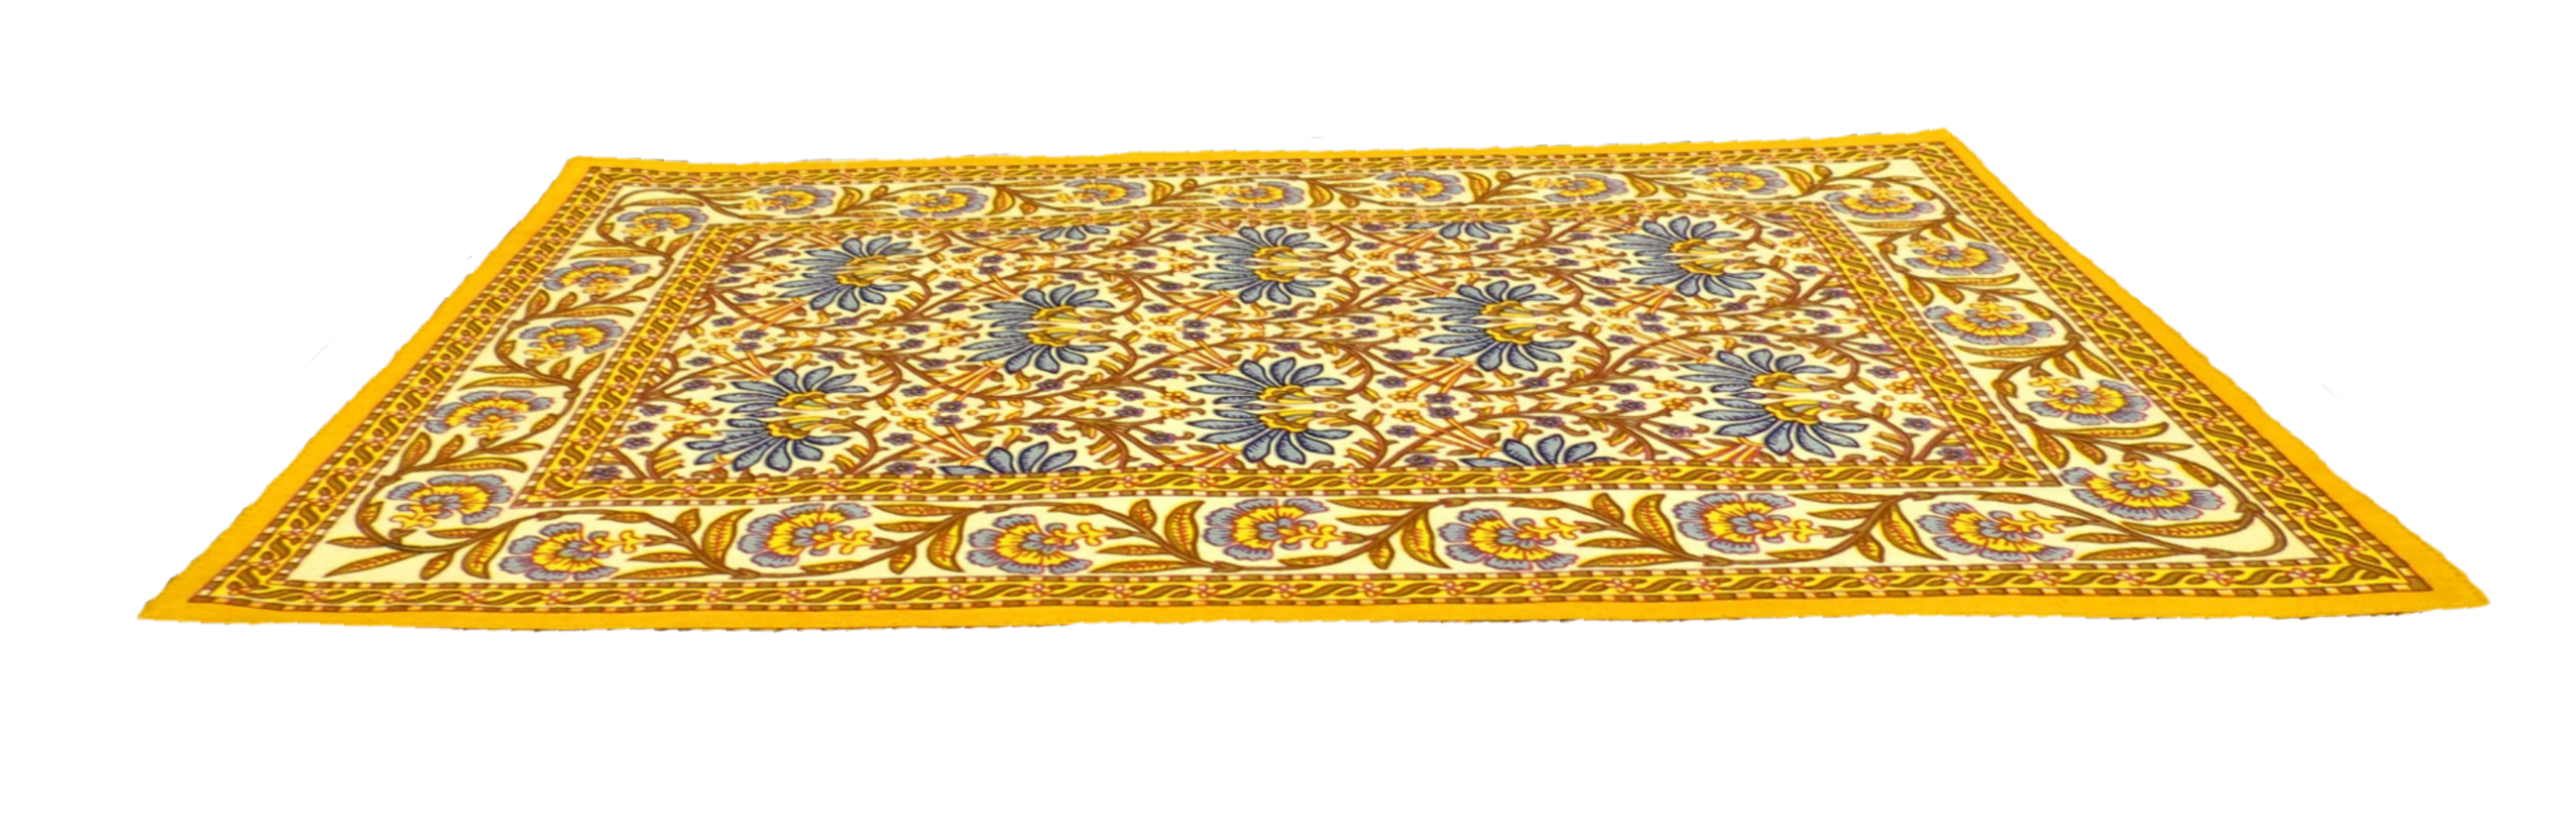 carpet rug png image collection download #27259